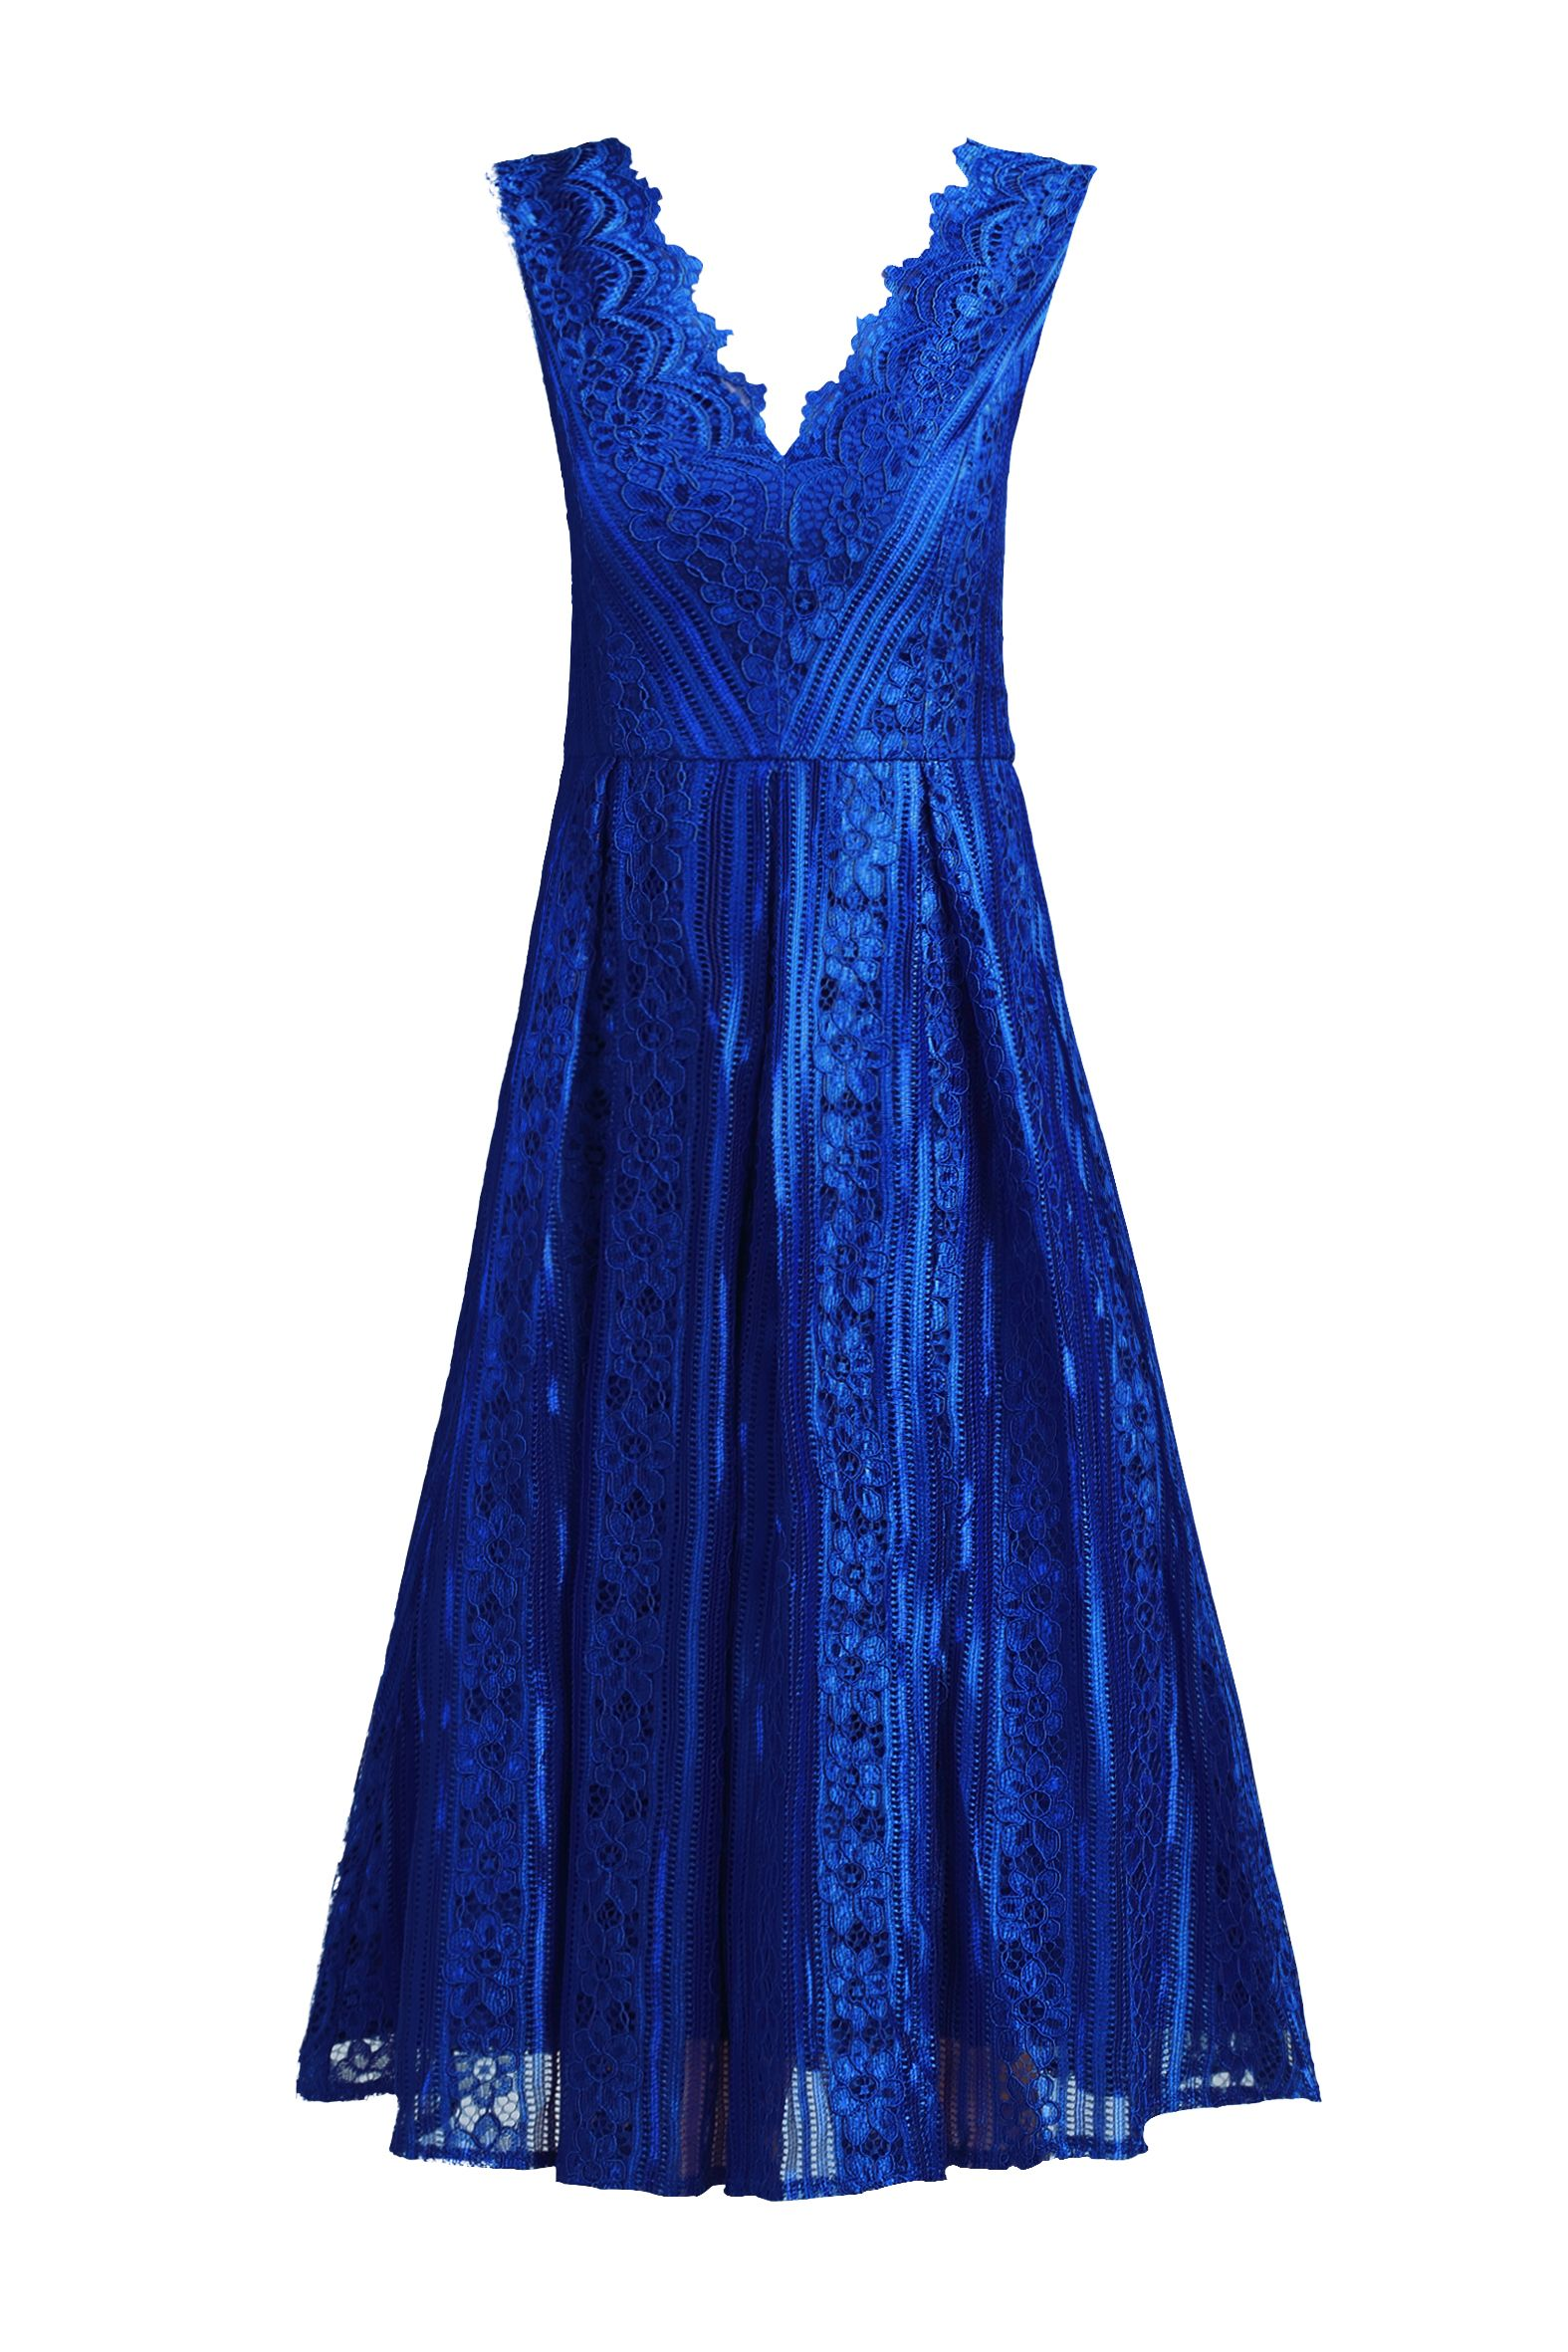 Jolie Moi Striped Pattern Lace Prom Dress, Royal Blue